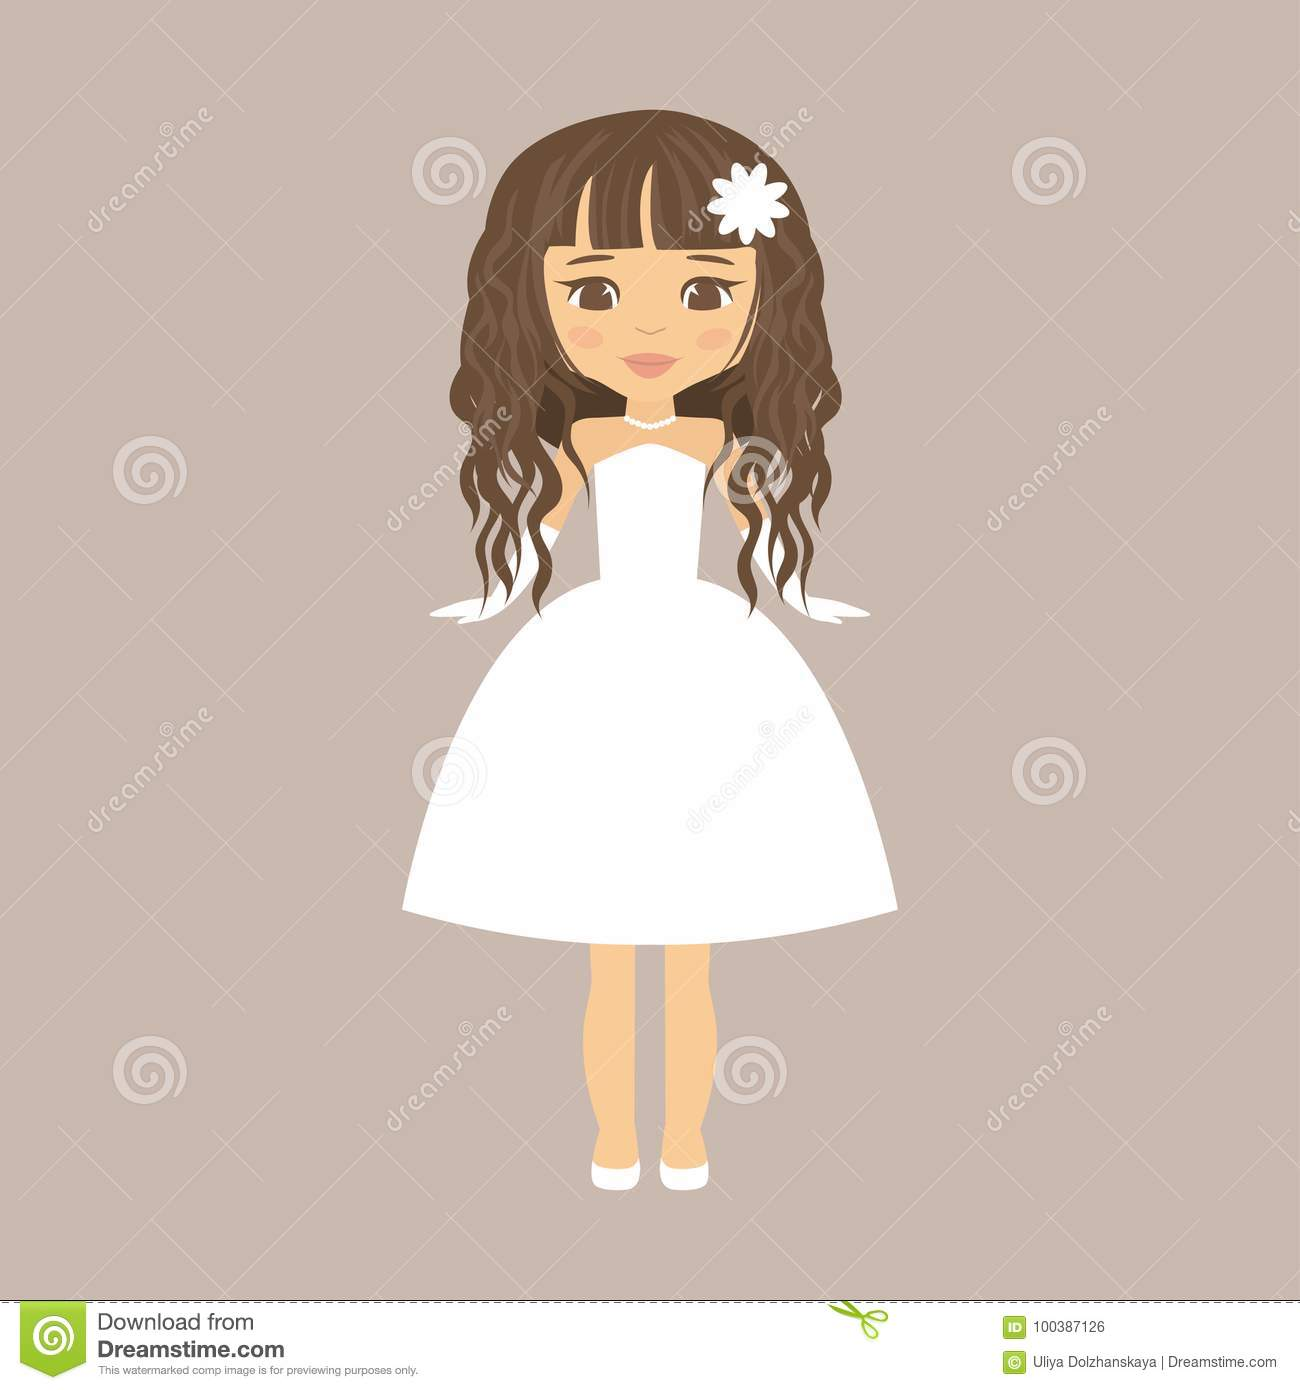 Cartoon Girl Curly Hair Stock Illustrations 4 720 Cartoon Girl Curly Hair Stock Illustrations Vectors Clipart Dreamstime